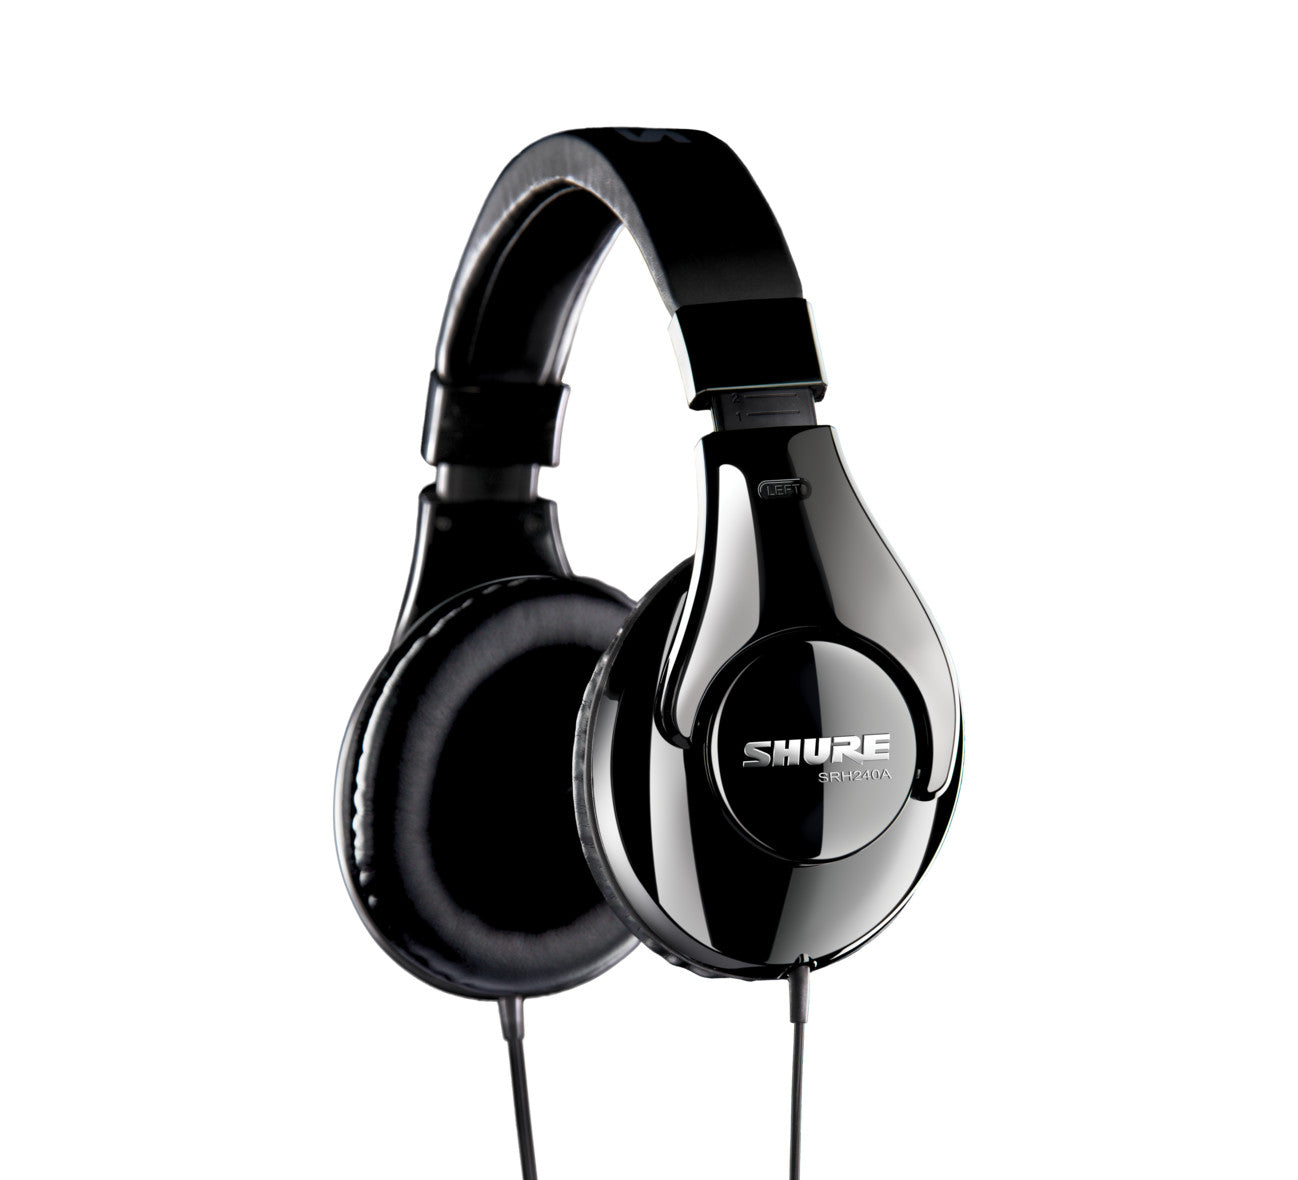 Shure SRH240A Professional Headphones with Attached Cable